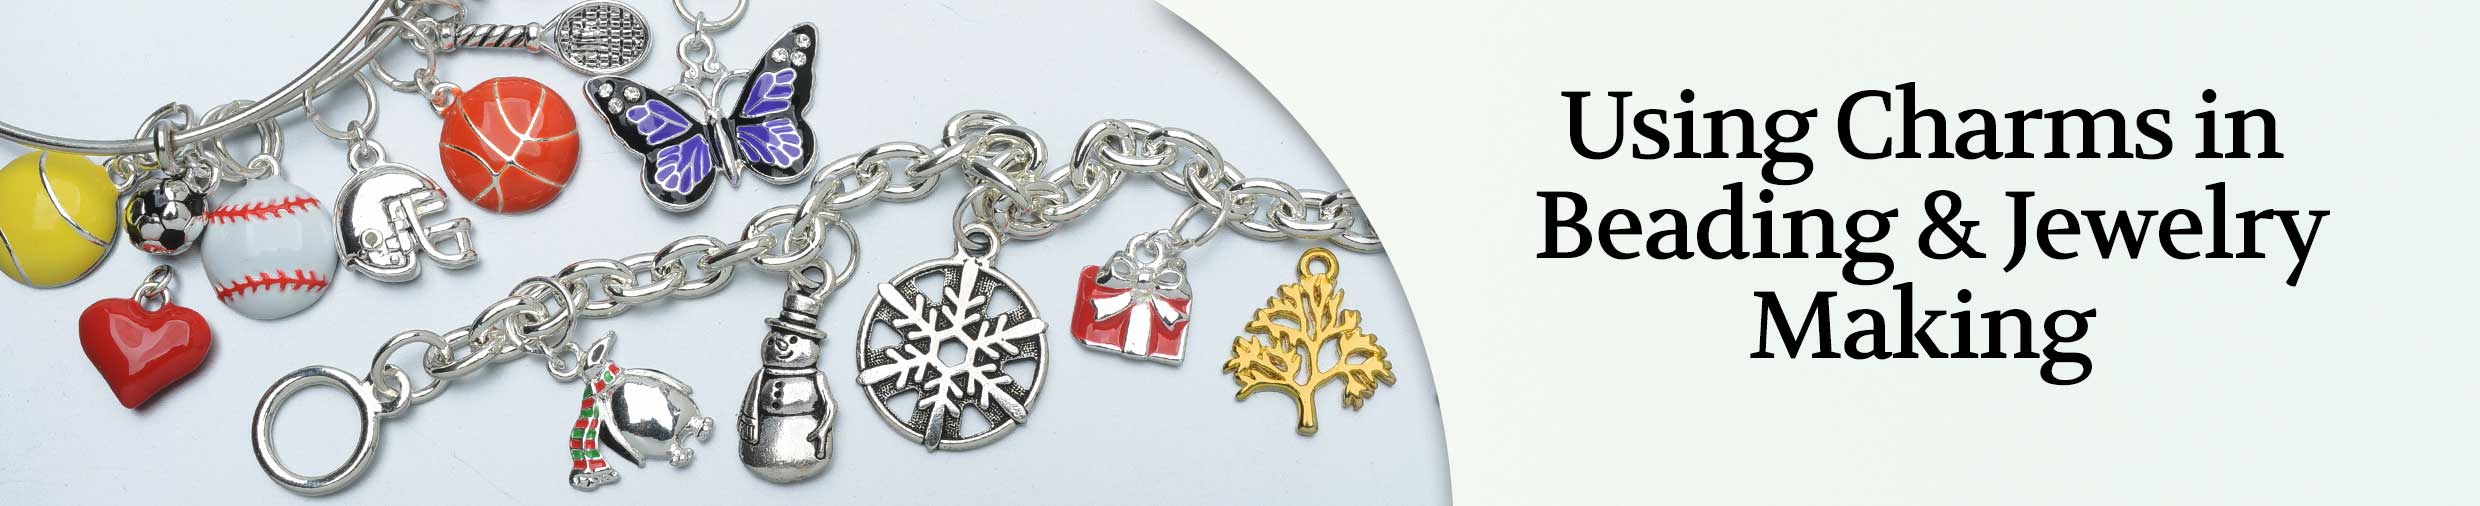 Using Charms in Beading and Jewelry Making